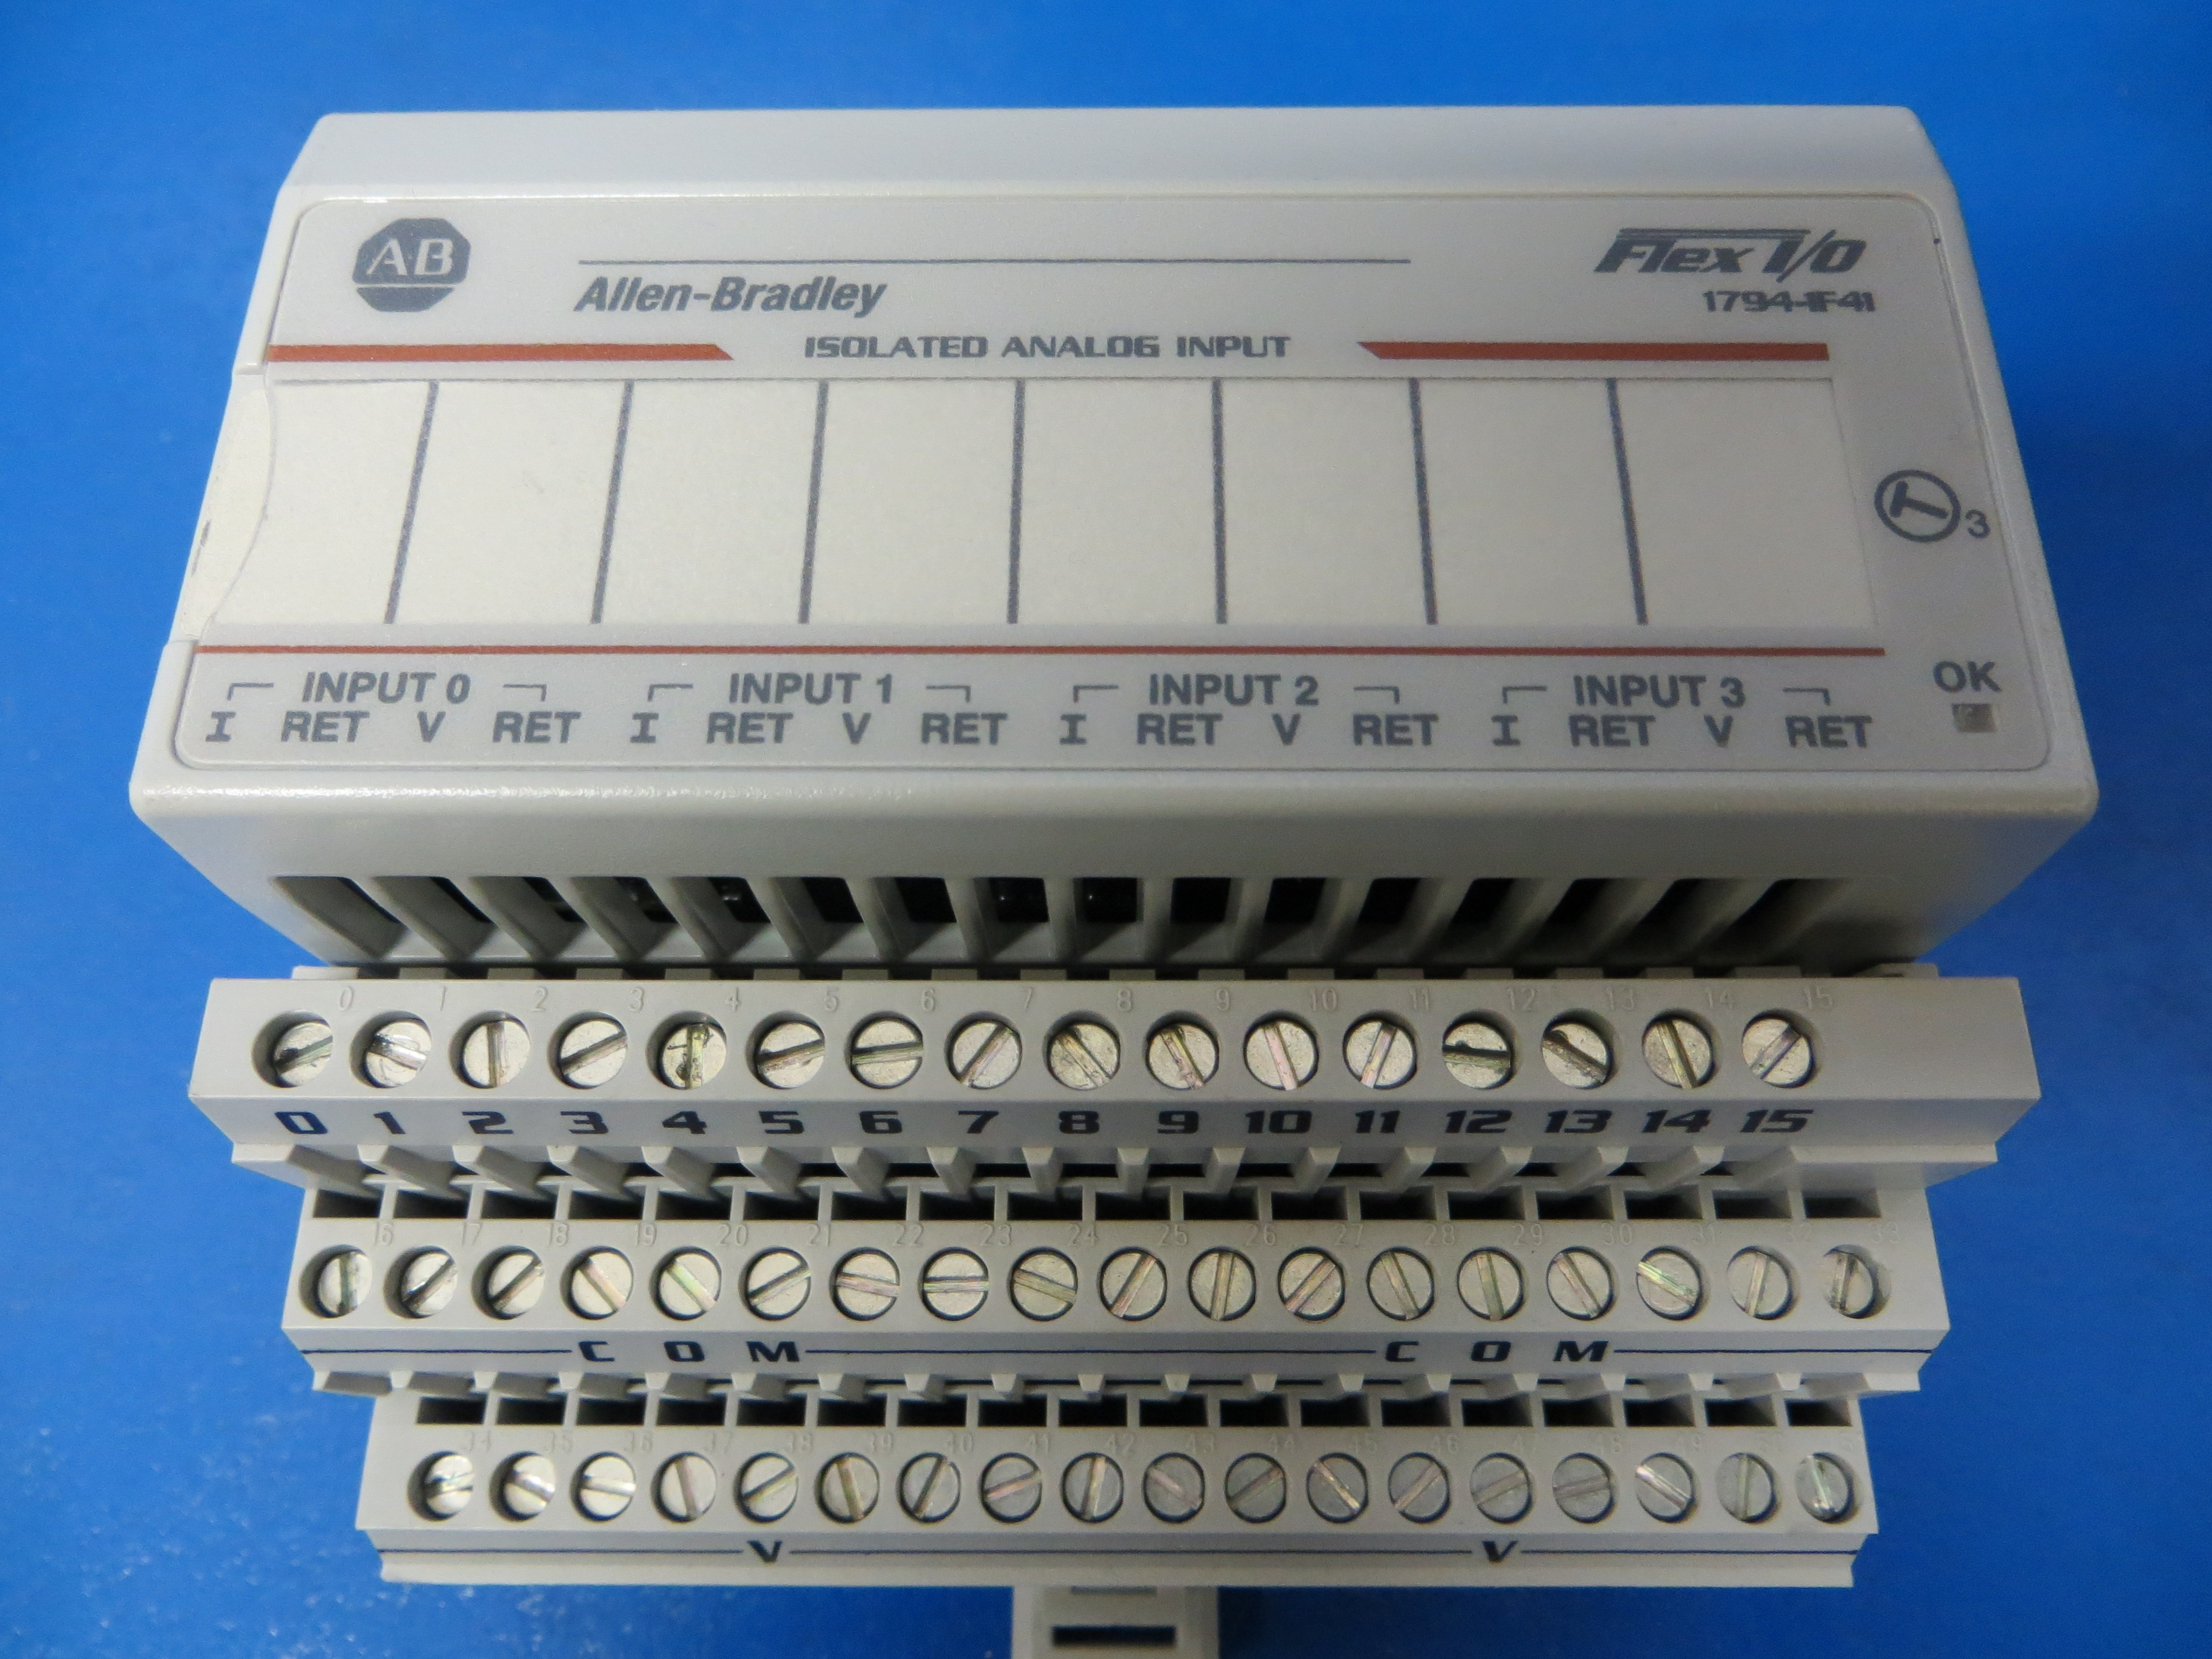 allen bradley 1794 if4i flex i o isolated analog input ser a f w rh svtechparts com 1794-if4i user manual 1794-if4i user manual